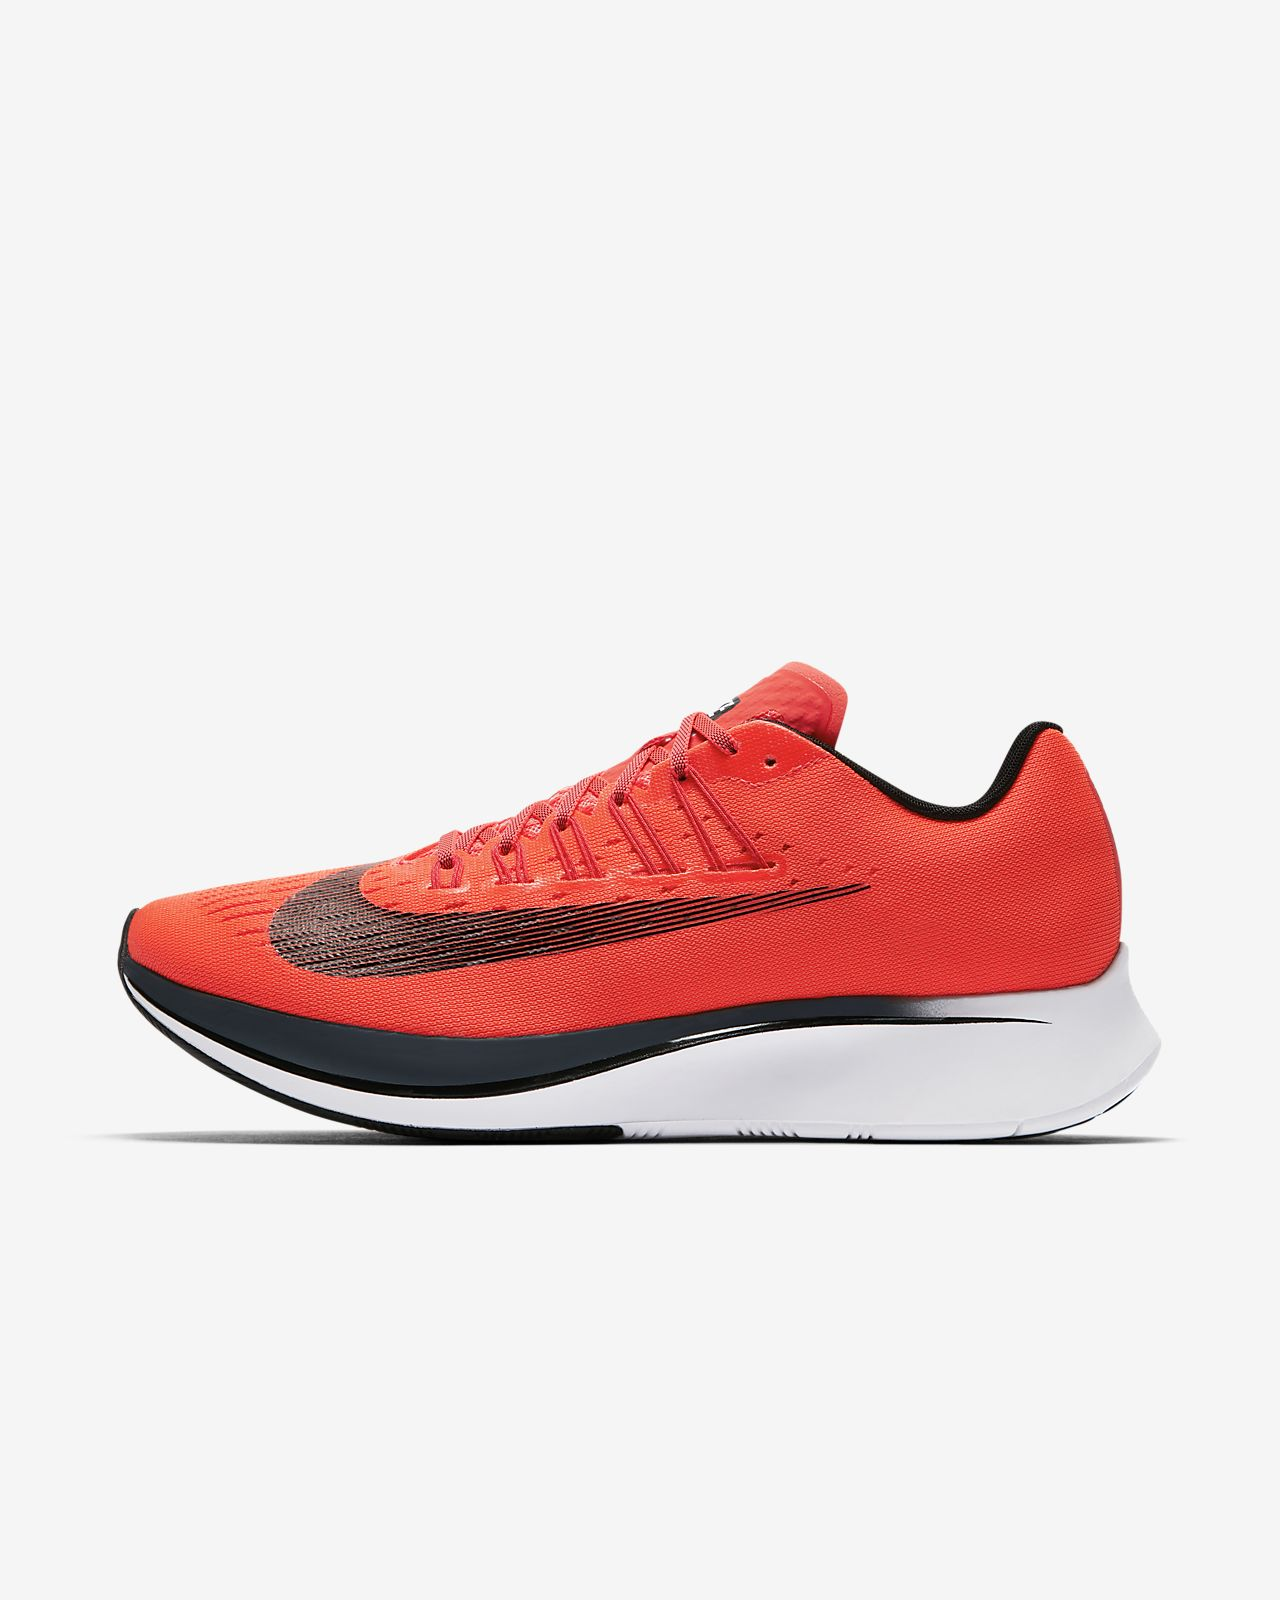 17ed32be0fdd Nike Zoom Fly Men s Running Shoe. Nike.com CA